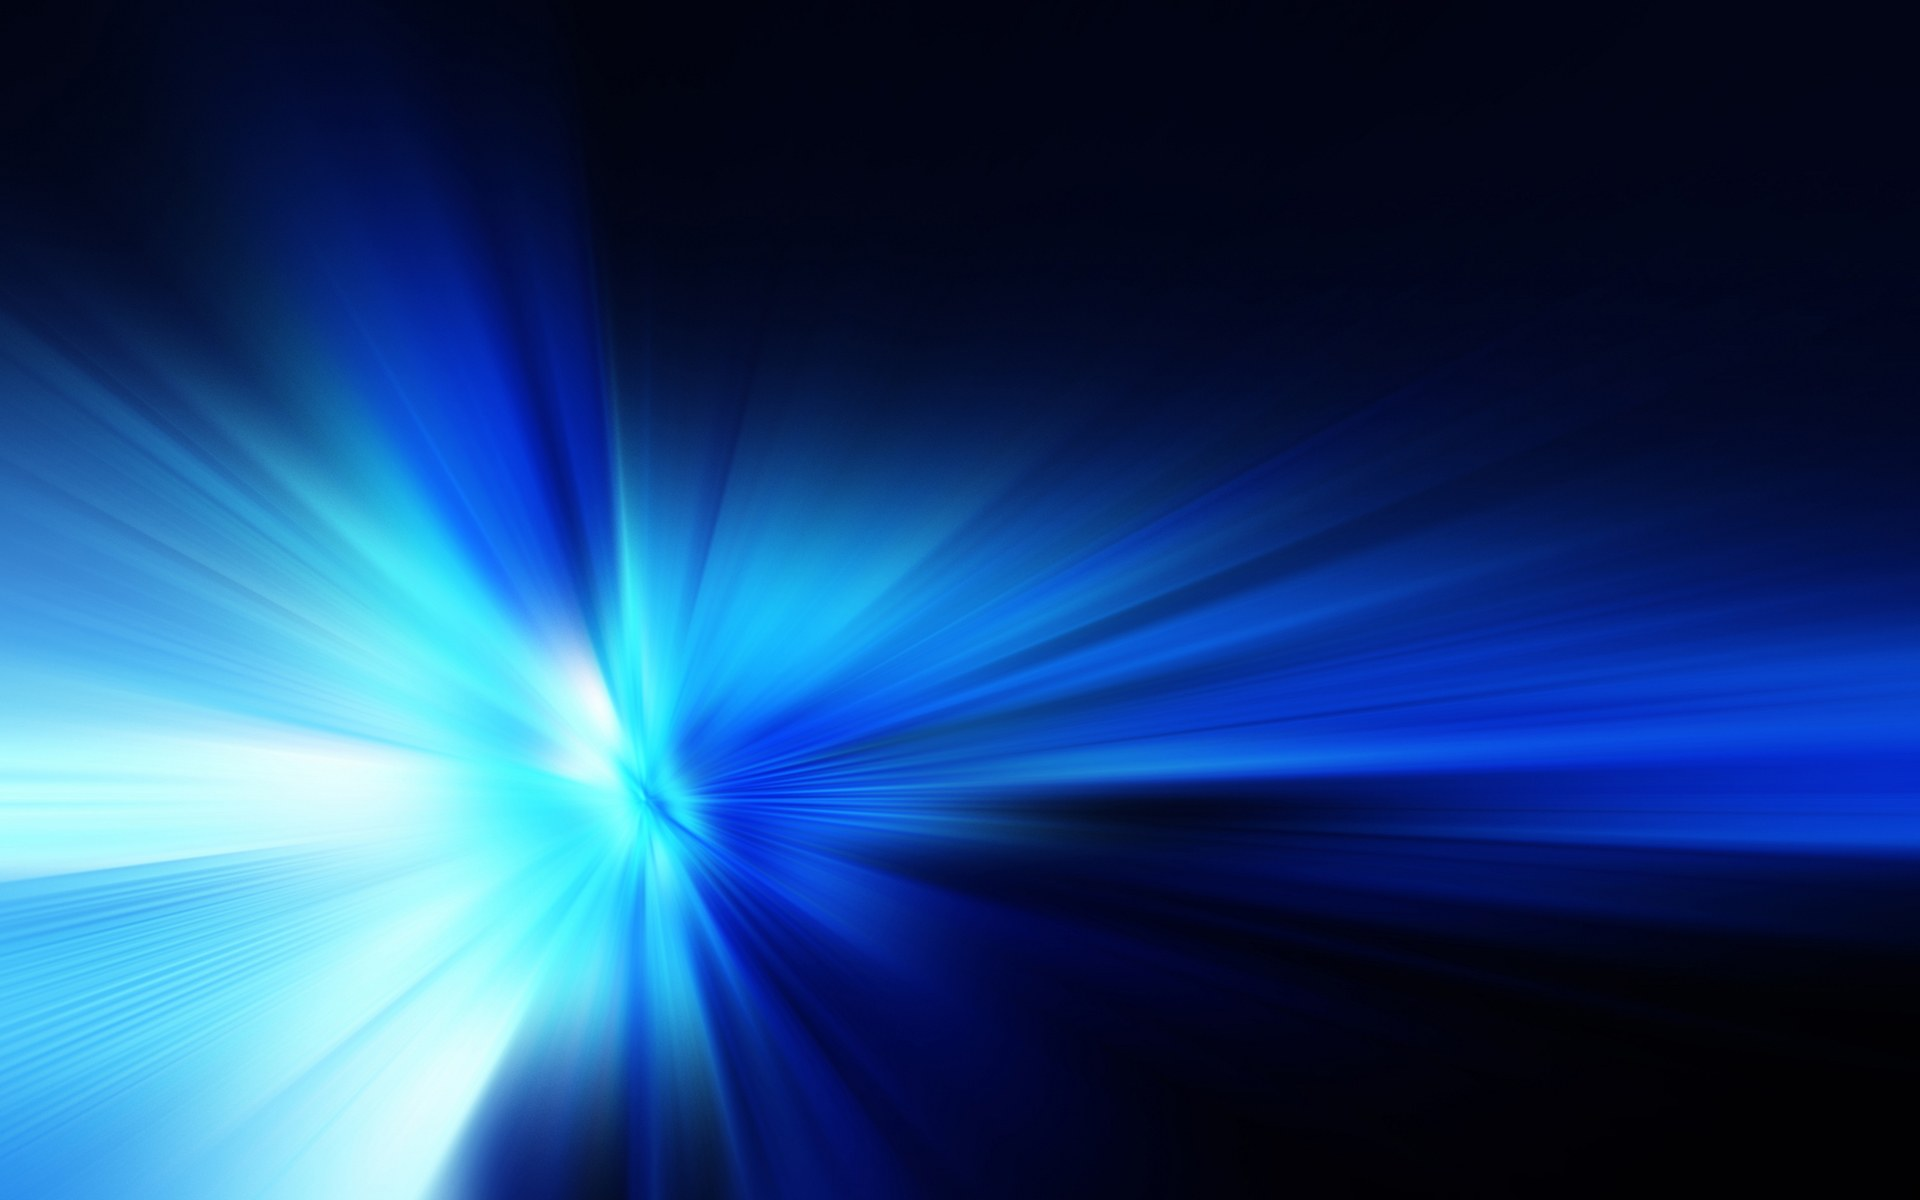 Abstract Backgrounds Blue 2946 Hd Wallpapers in Abstract   Imagesci 1920x1200